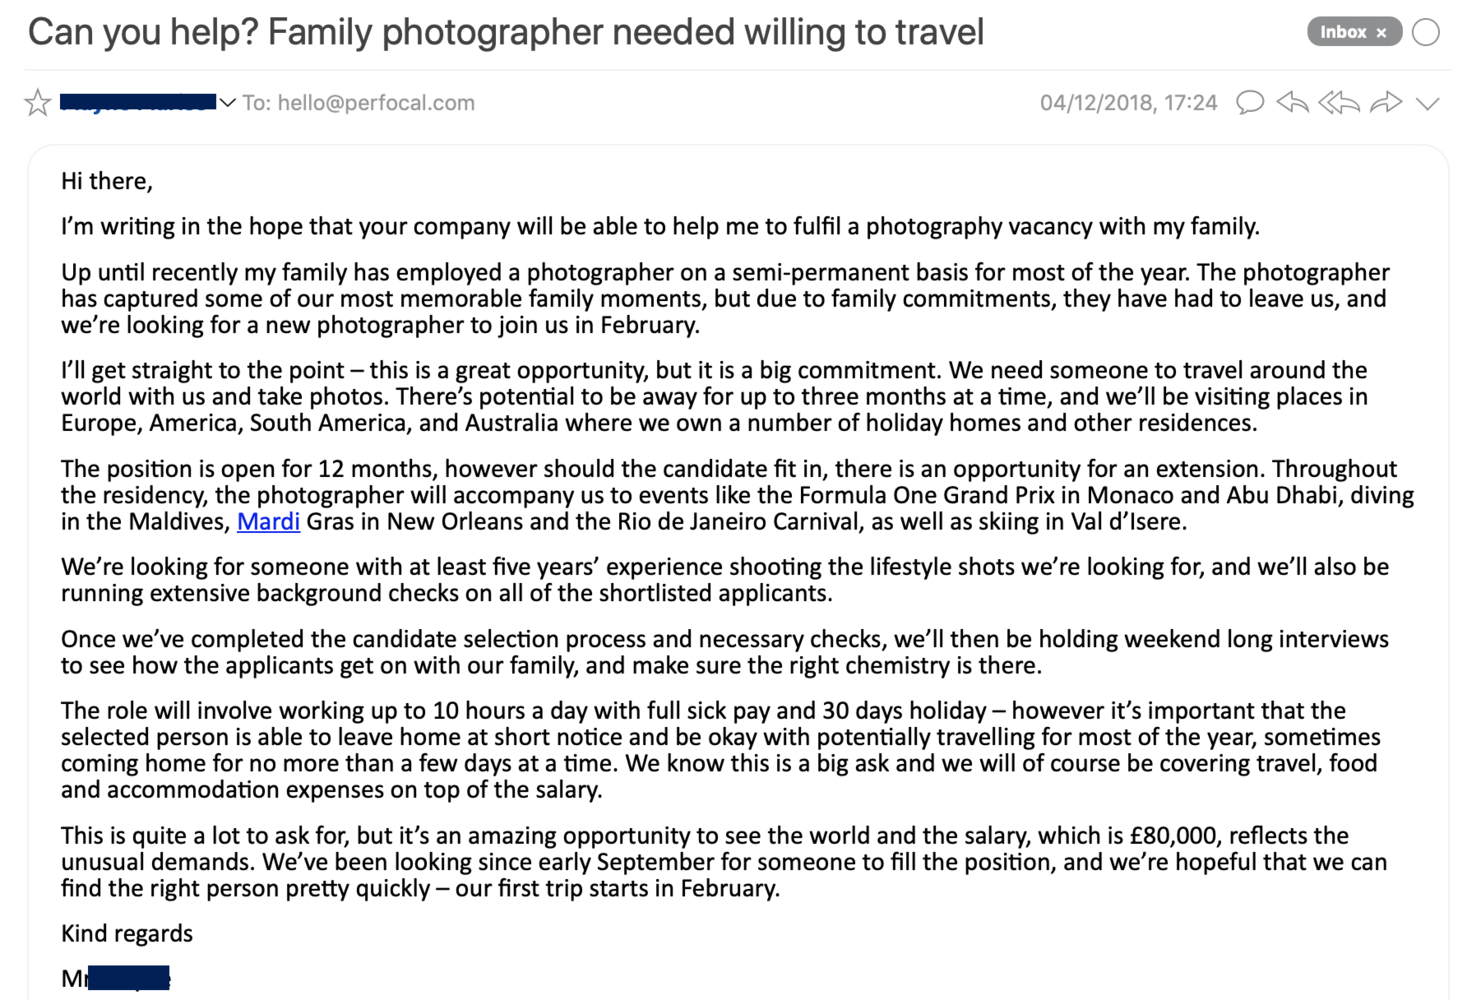 Dream Job or Too Good to Be True? Wealthy Family Looking for